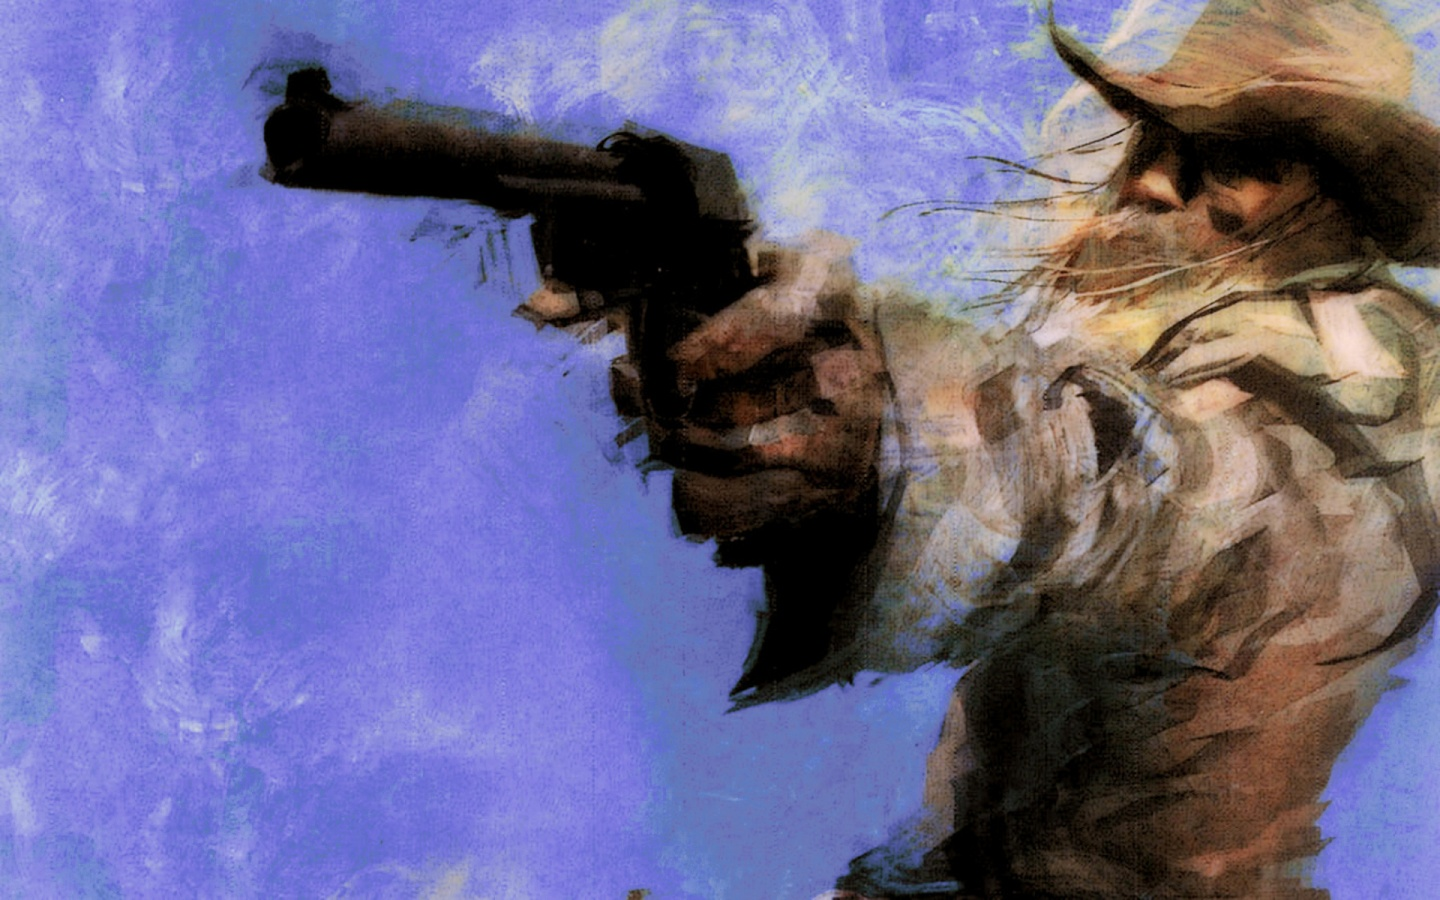 old-style-gunman-wallpapers 34251 1440x9